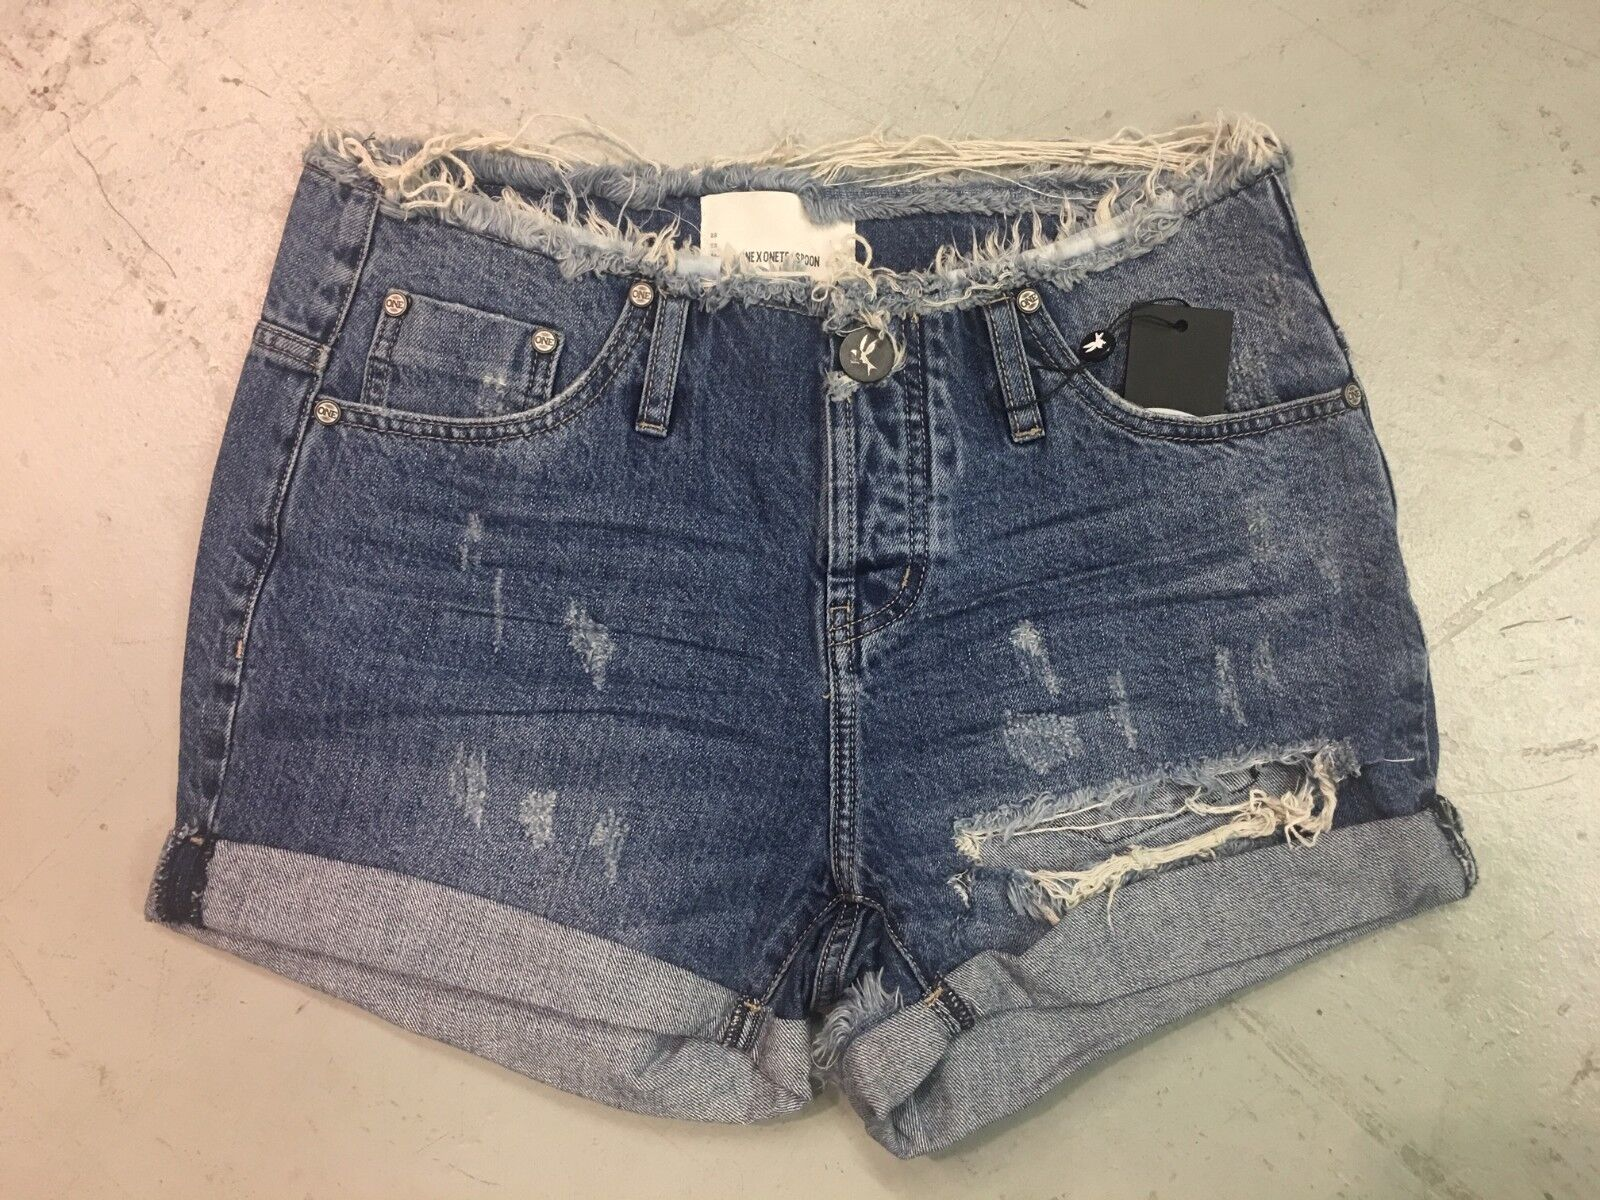 NWT ONE TEASPOON WOMEN'S HIGH WAIST CHARGERS DENIM SHORTS IN OXFORD SIZE 26